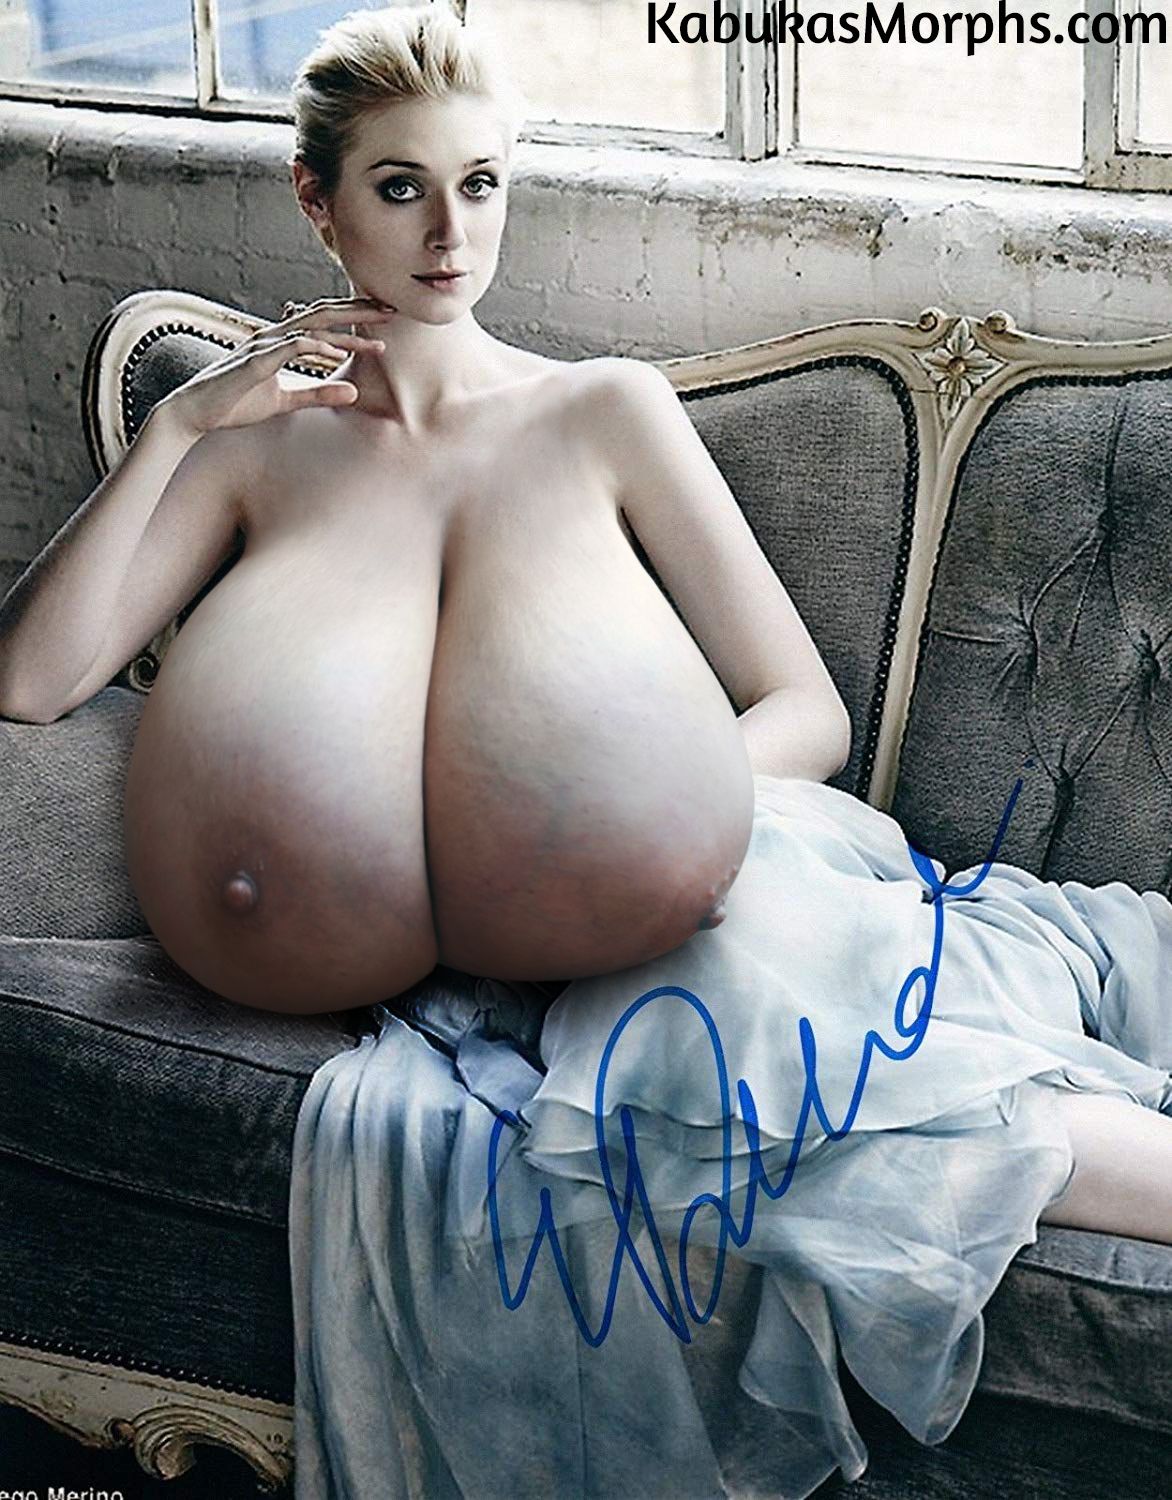 Tits giant saggy Wanker Lab